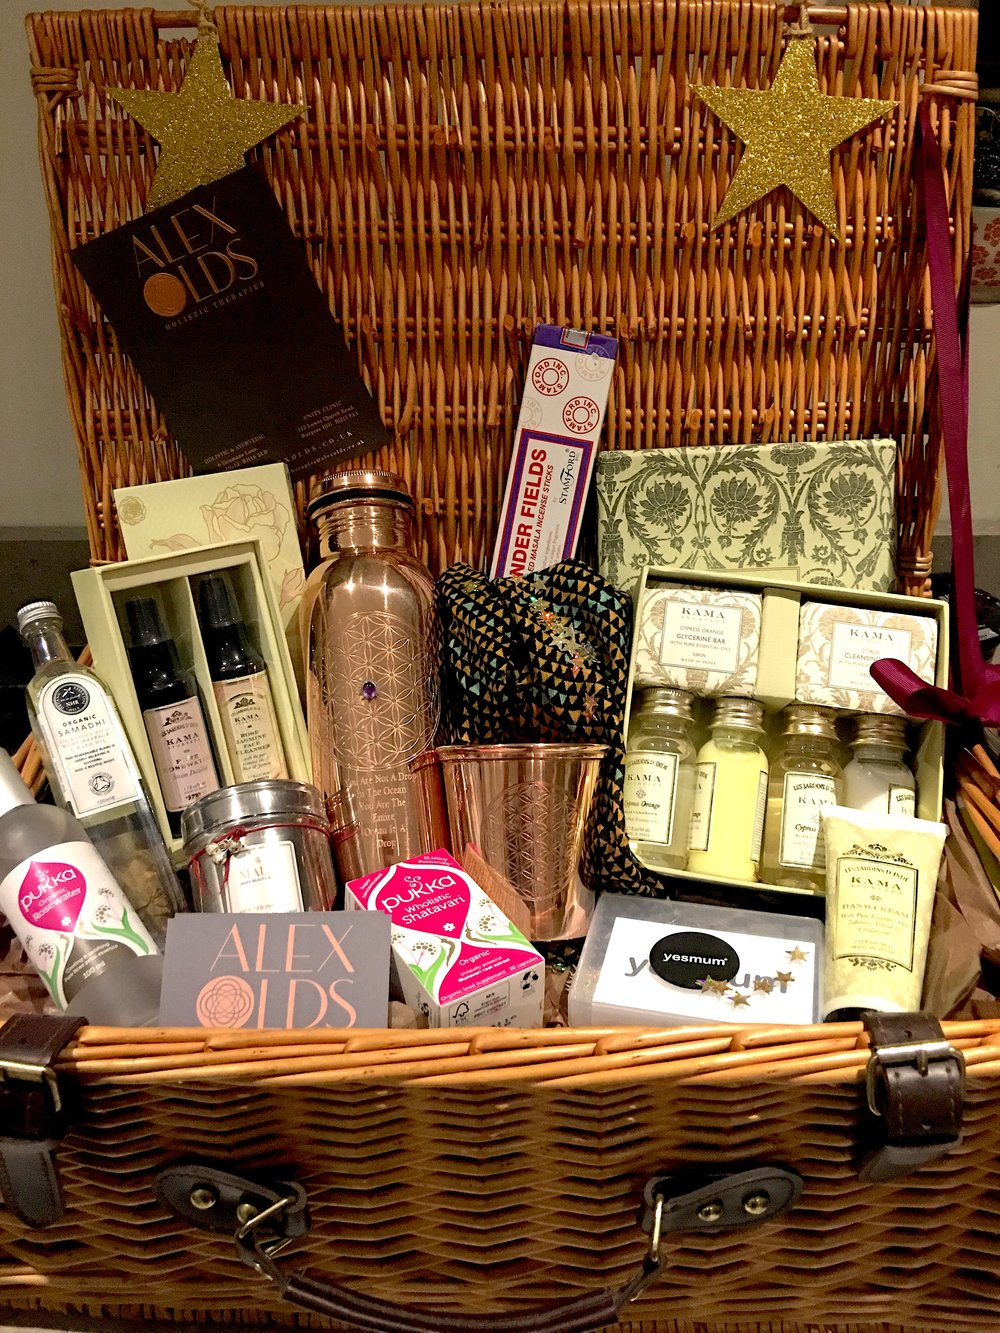 The hamper includes products and treatments worth more than £300+!